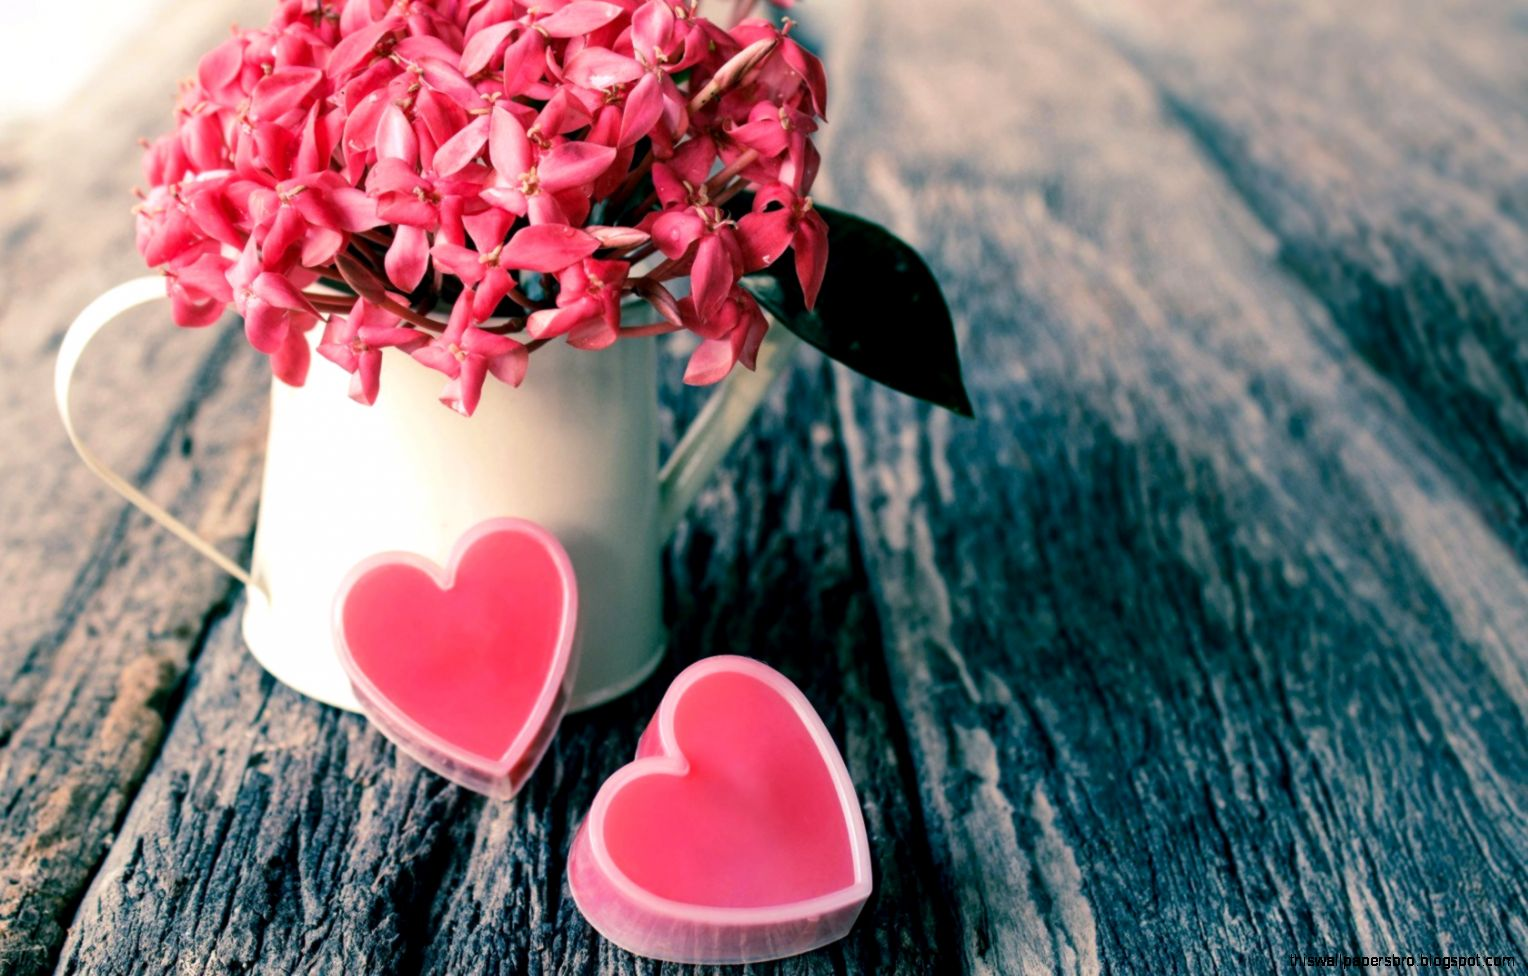 love hd pink heart flowers love heart flowers | this wallpapers